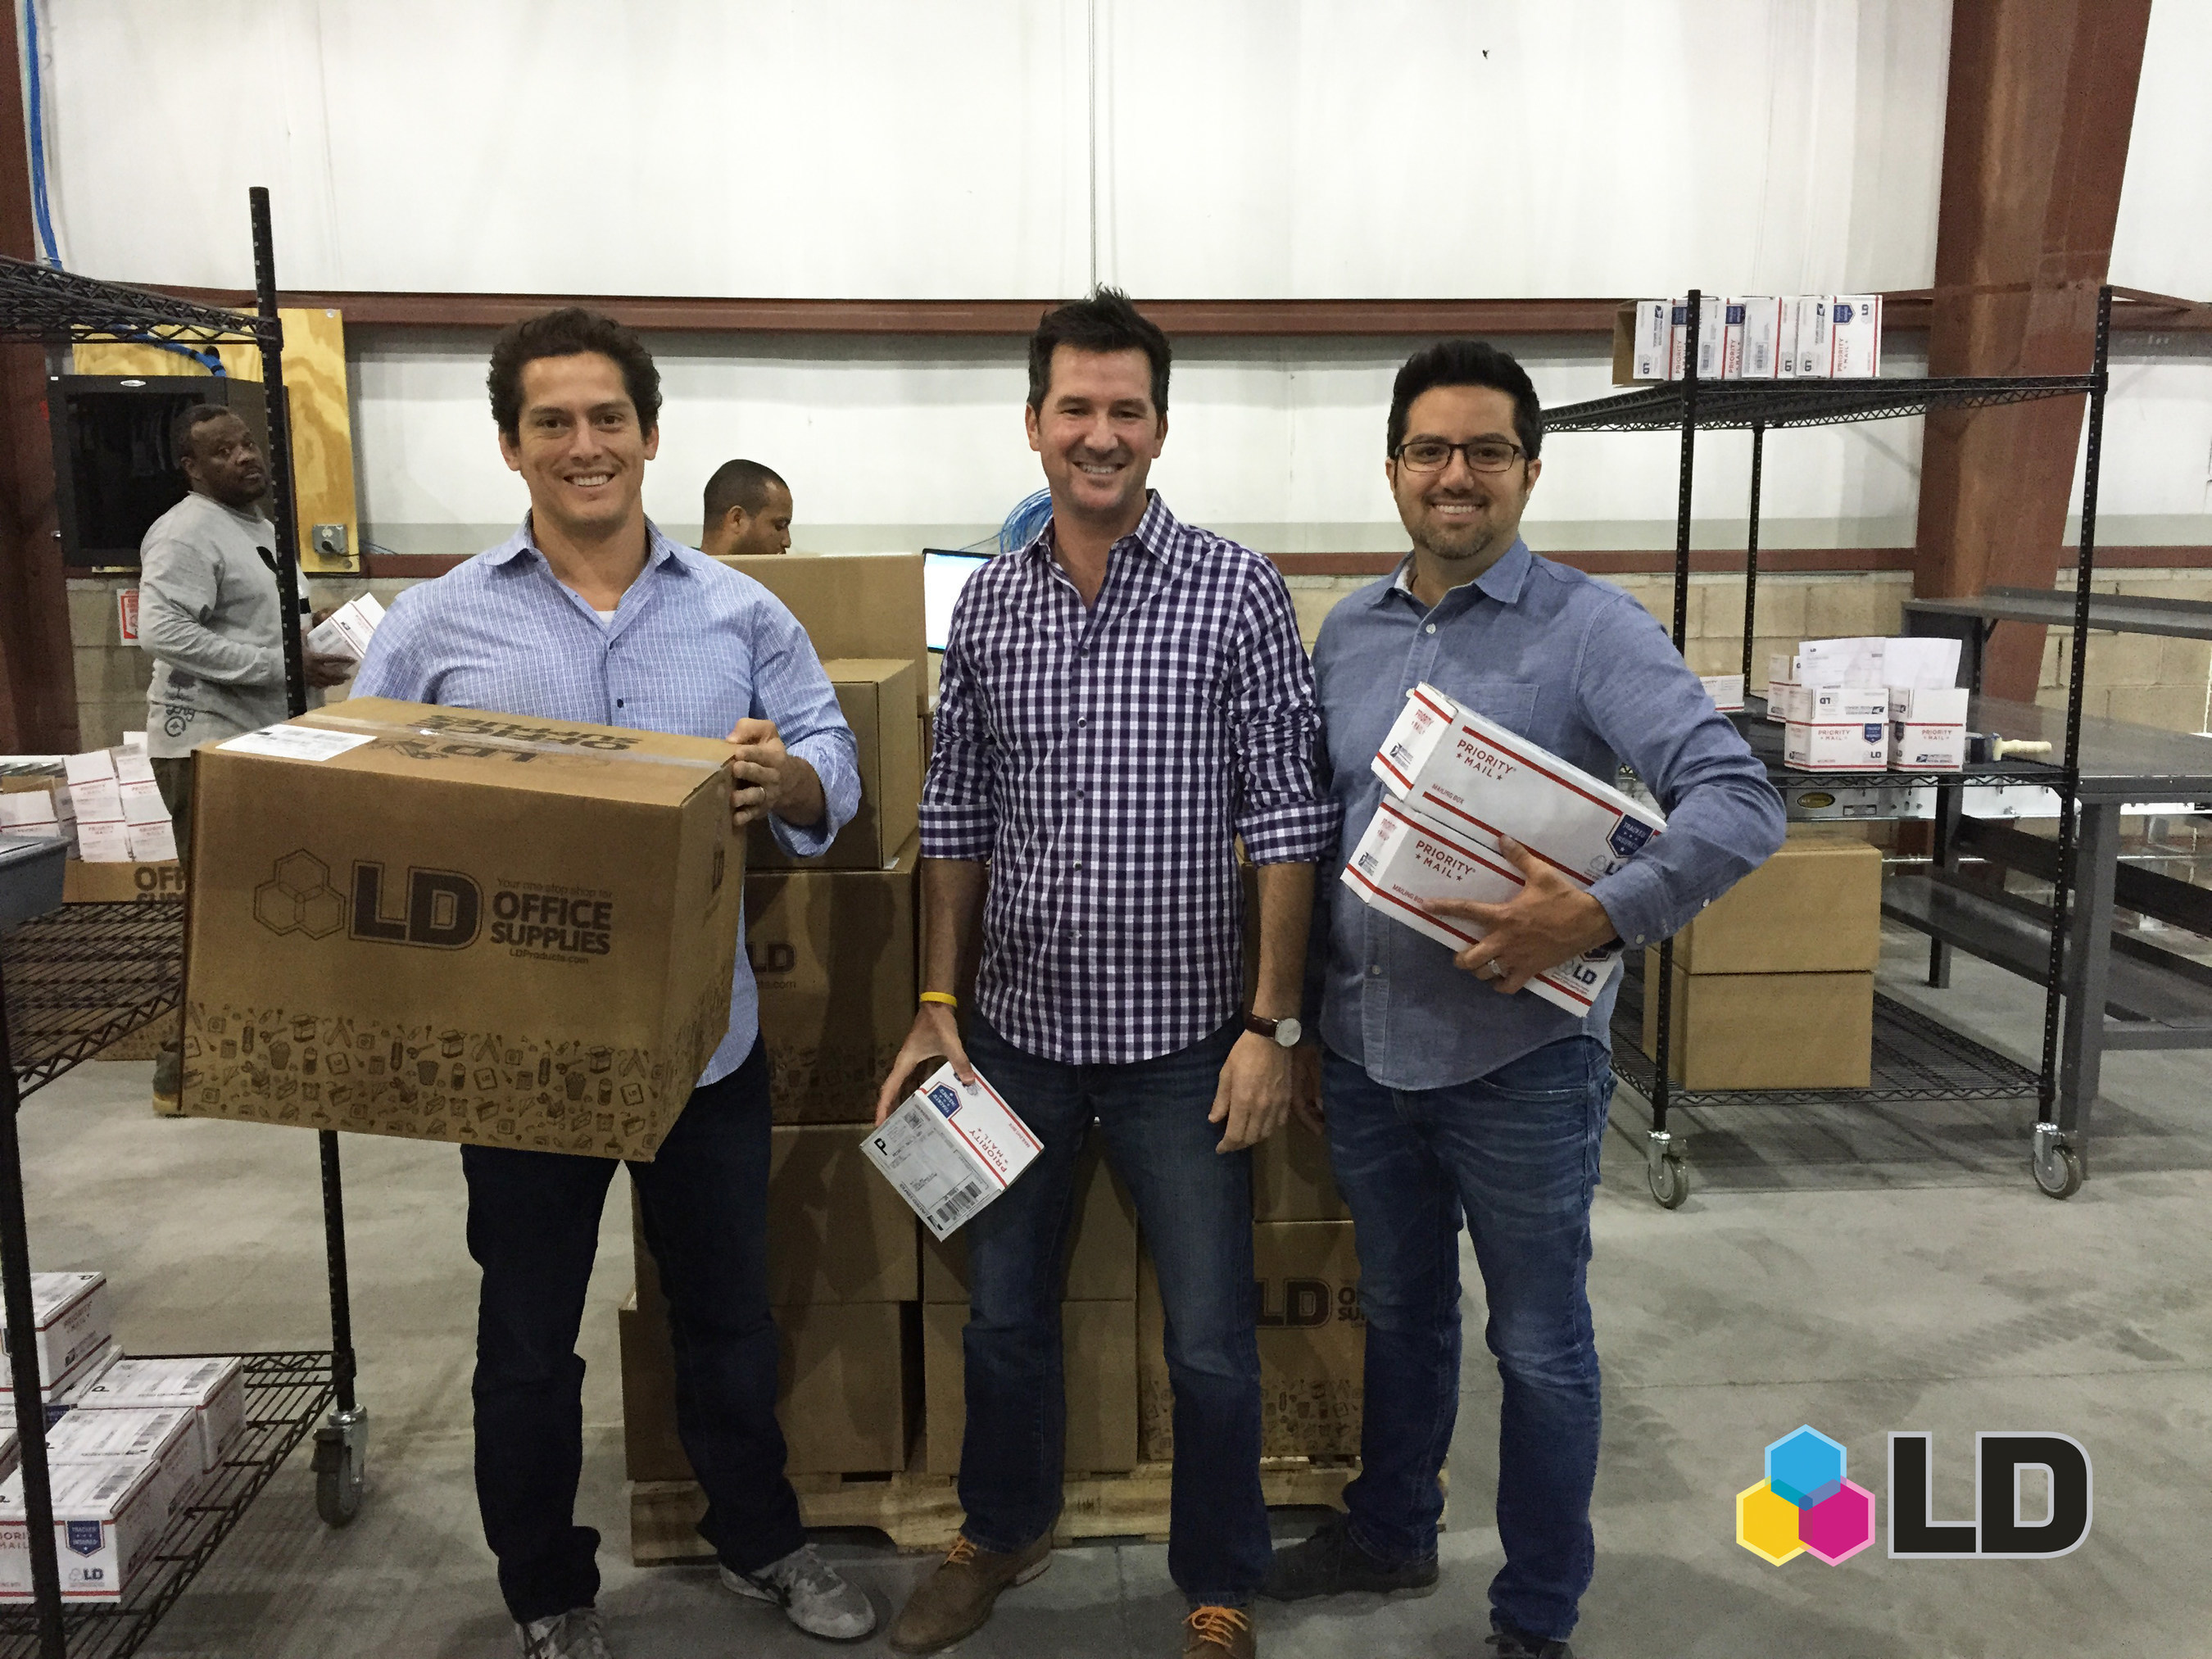 The three team members present at every LD Products location opening over the last 15 years (from left to right): Frank Farina, Vice President Business Development; Patrick Devane, Senior Vice President, Customer Care; Aaron Leon, Founder and CEO.